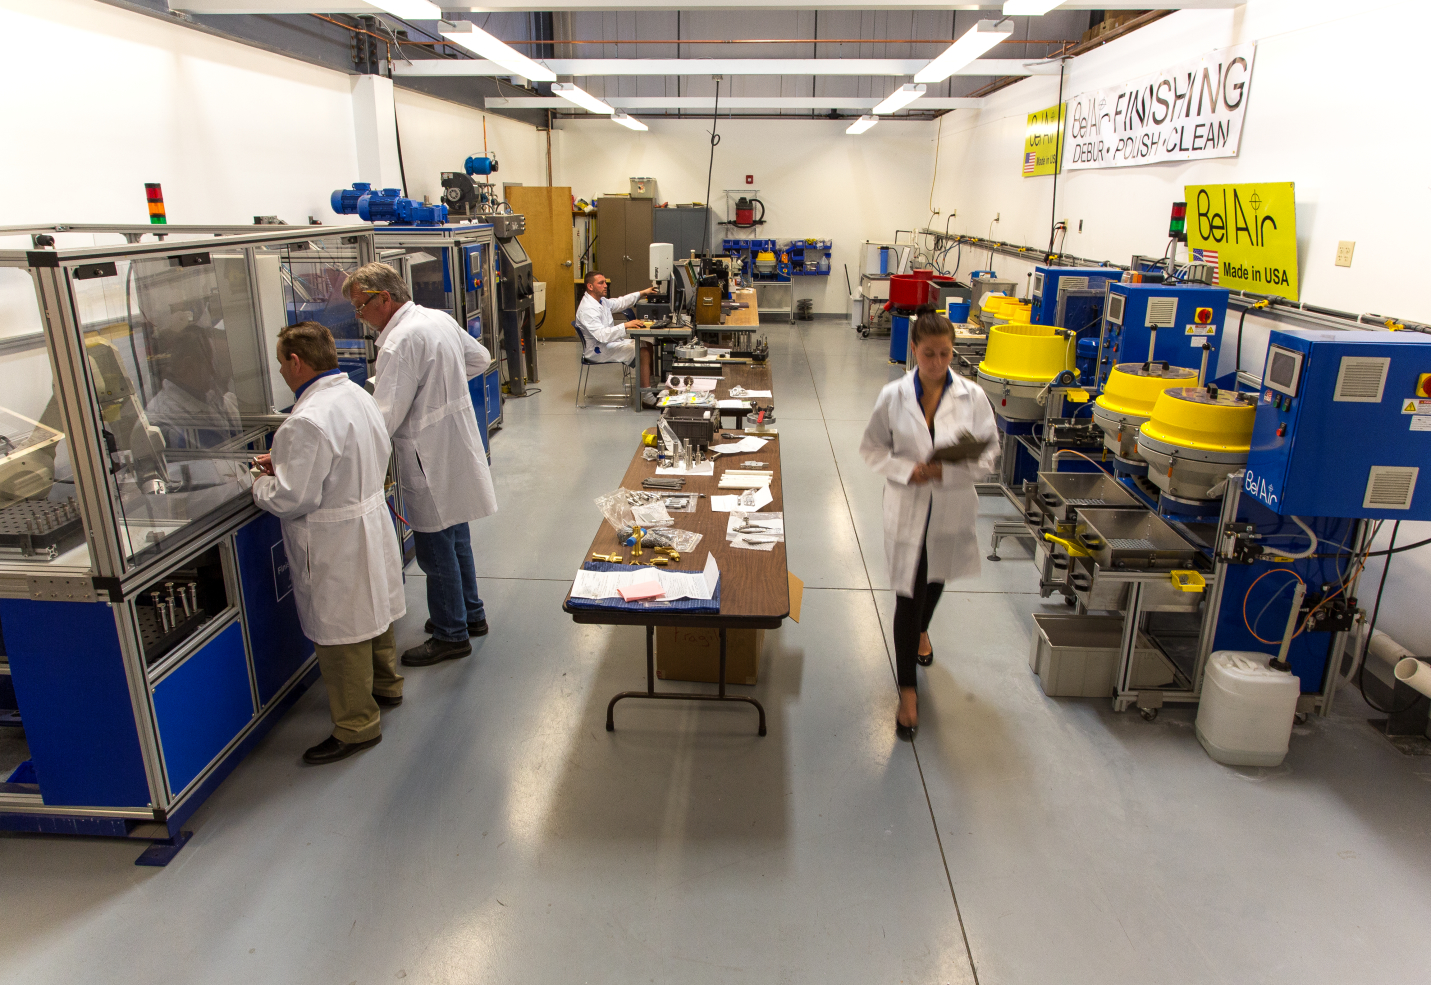 3D Post Processing Laboratory, array of post processing equipment and supplies